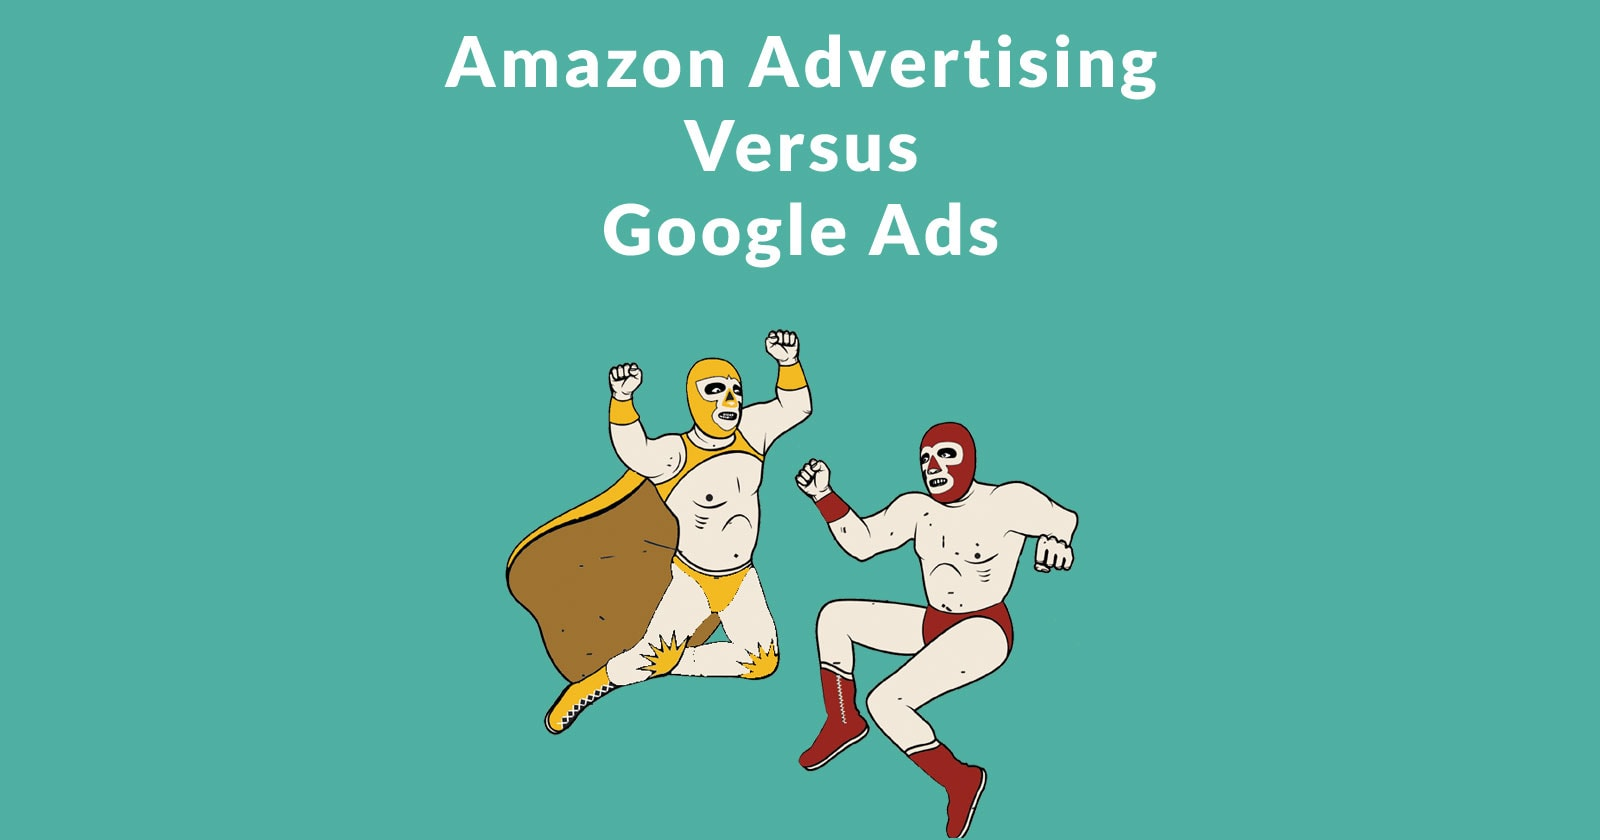 Image for Amazon PPC Challenges Google Ads - Search Engine Journal